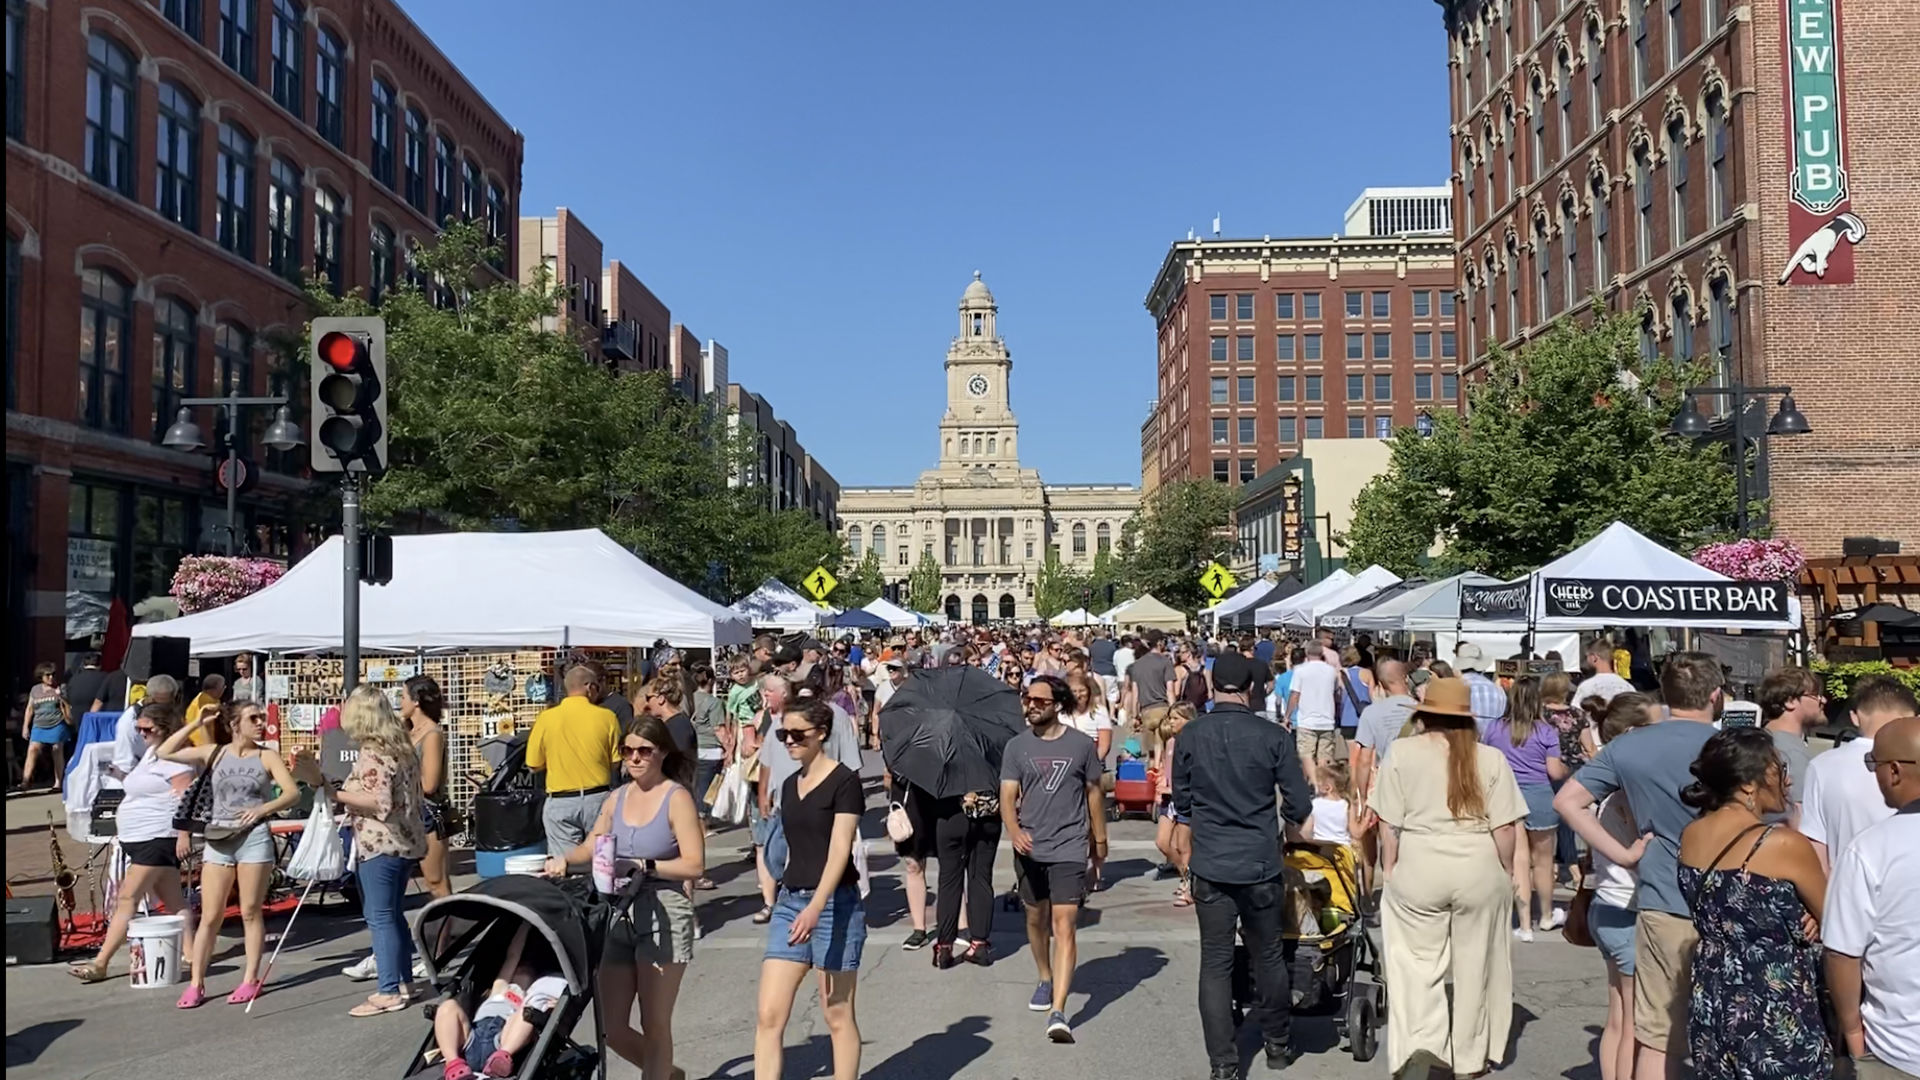 A crowd of people walking outside at the Downtown Des Moines Farmers Market.